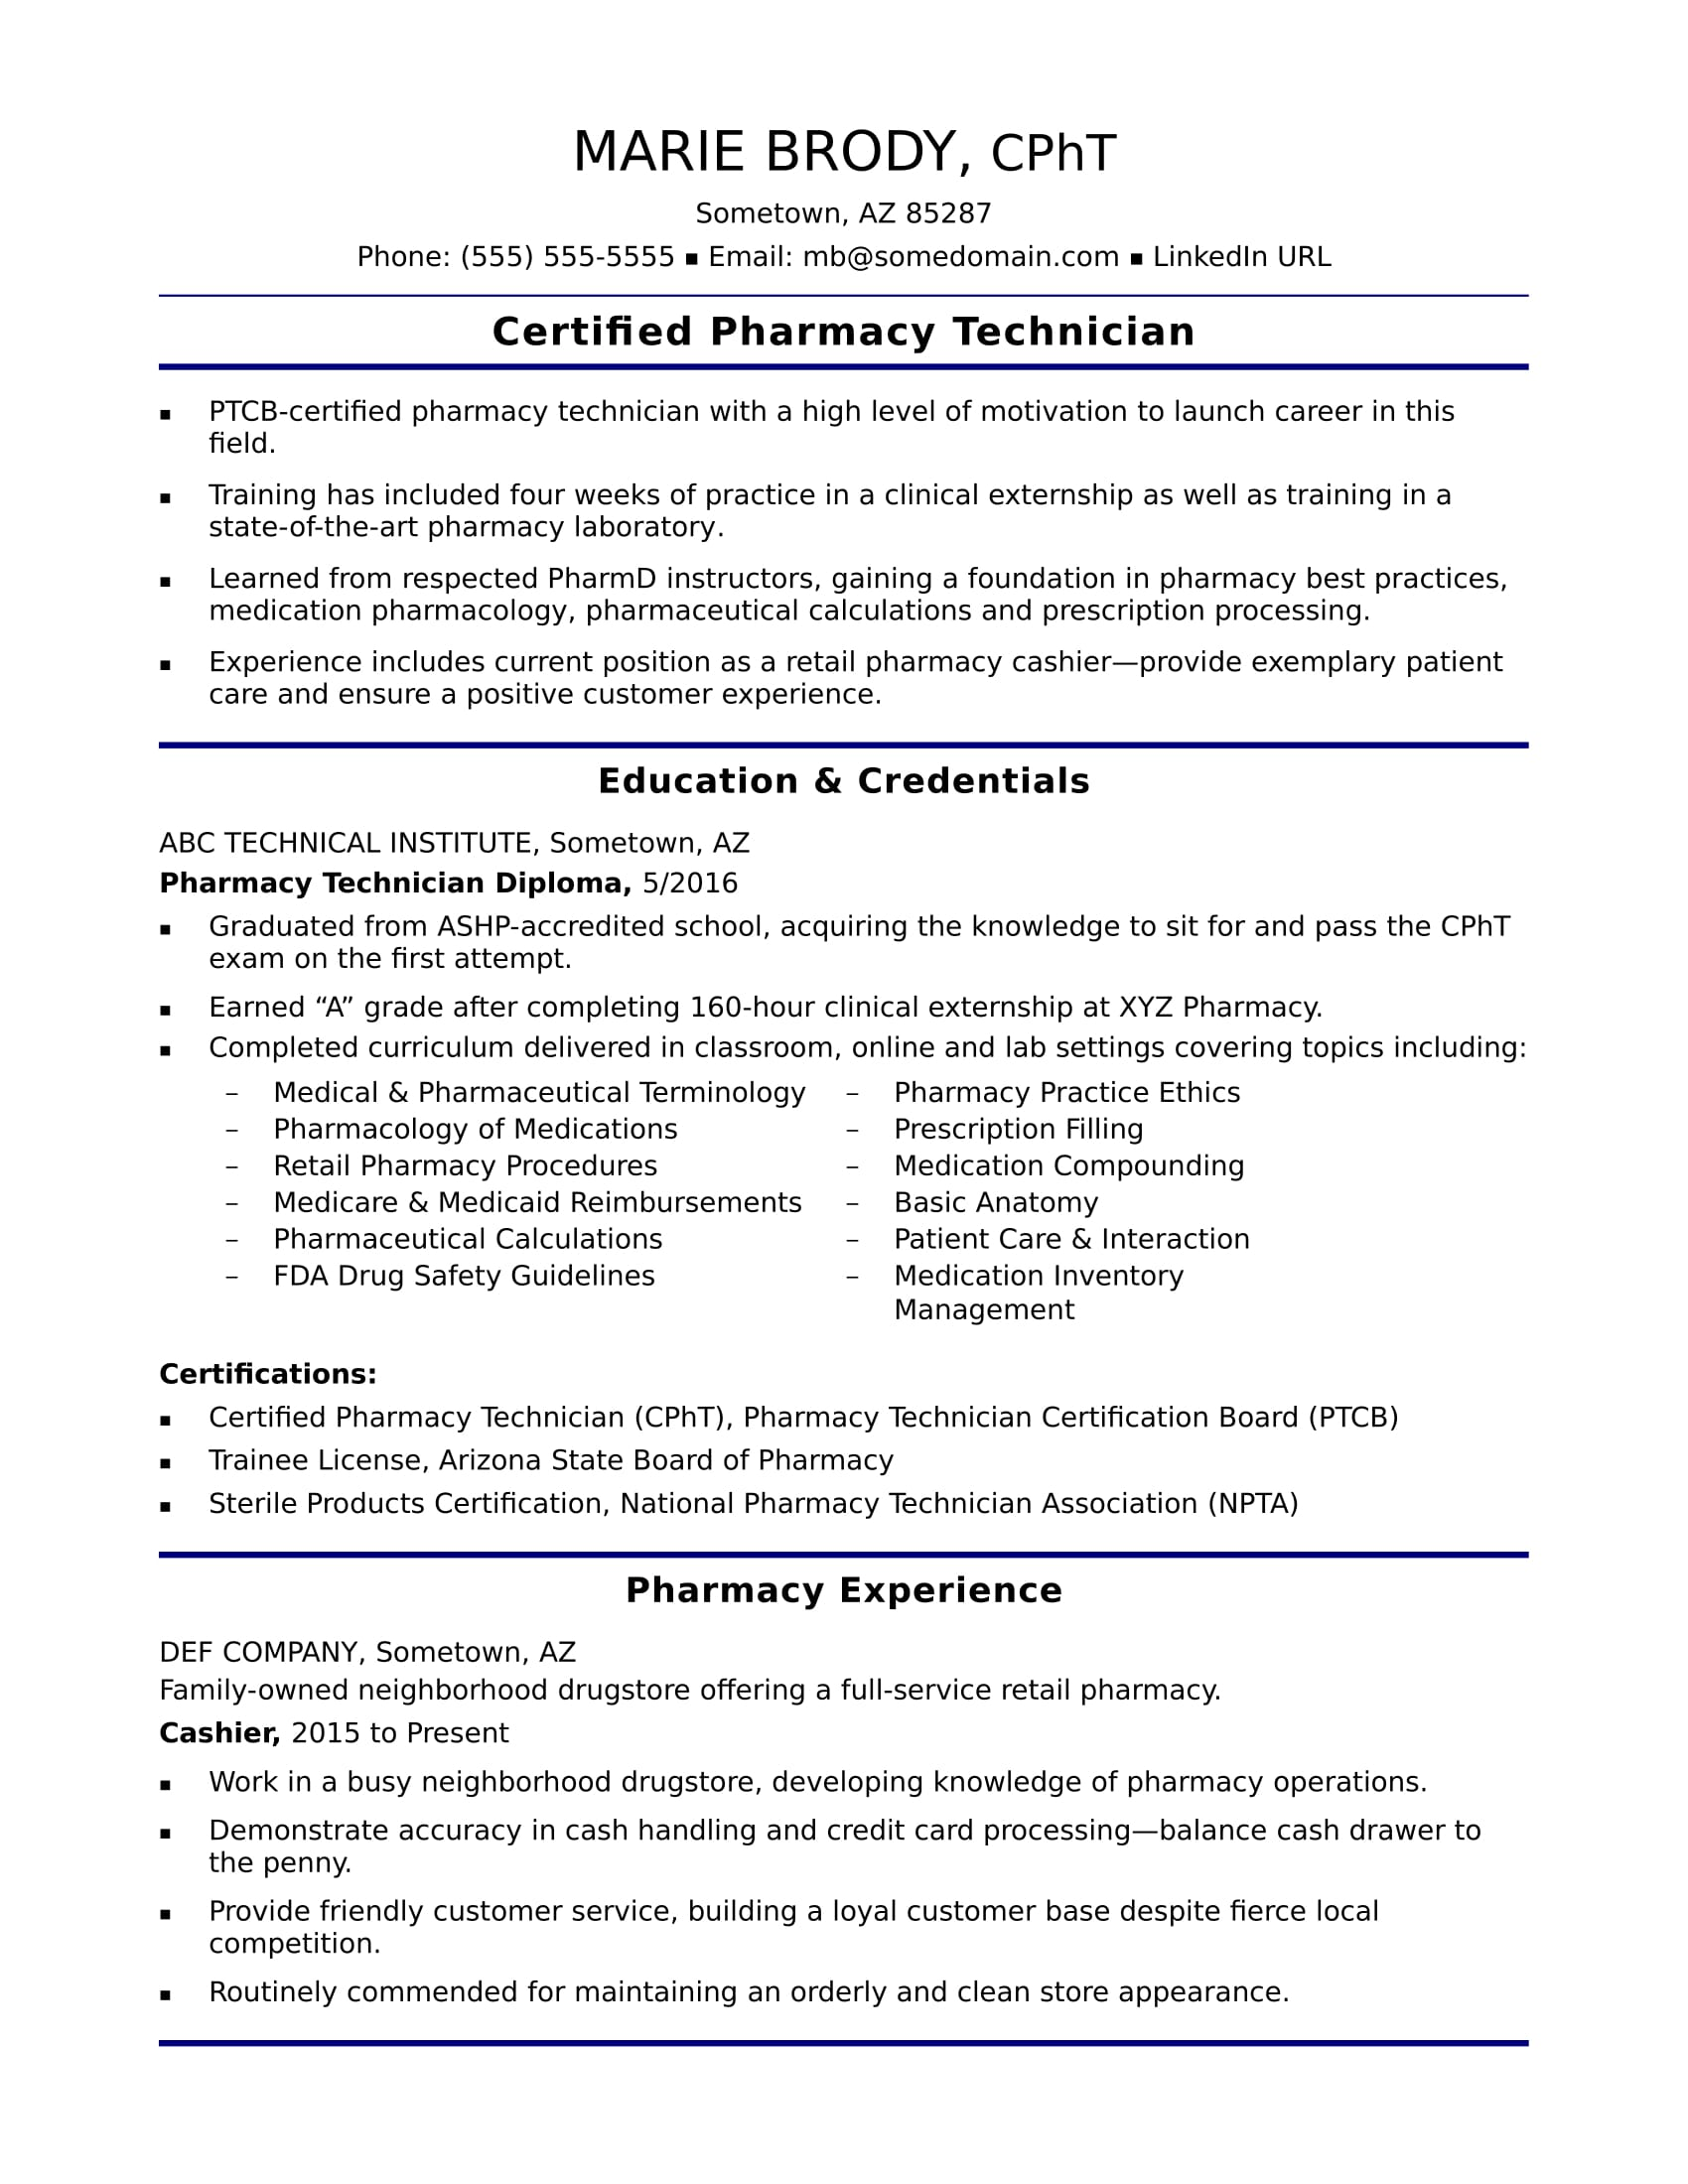 Sample Resume For An Entry Level Pharmacy Technician  Pharmacist Sample Resume